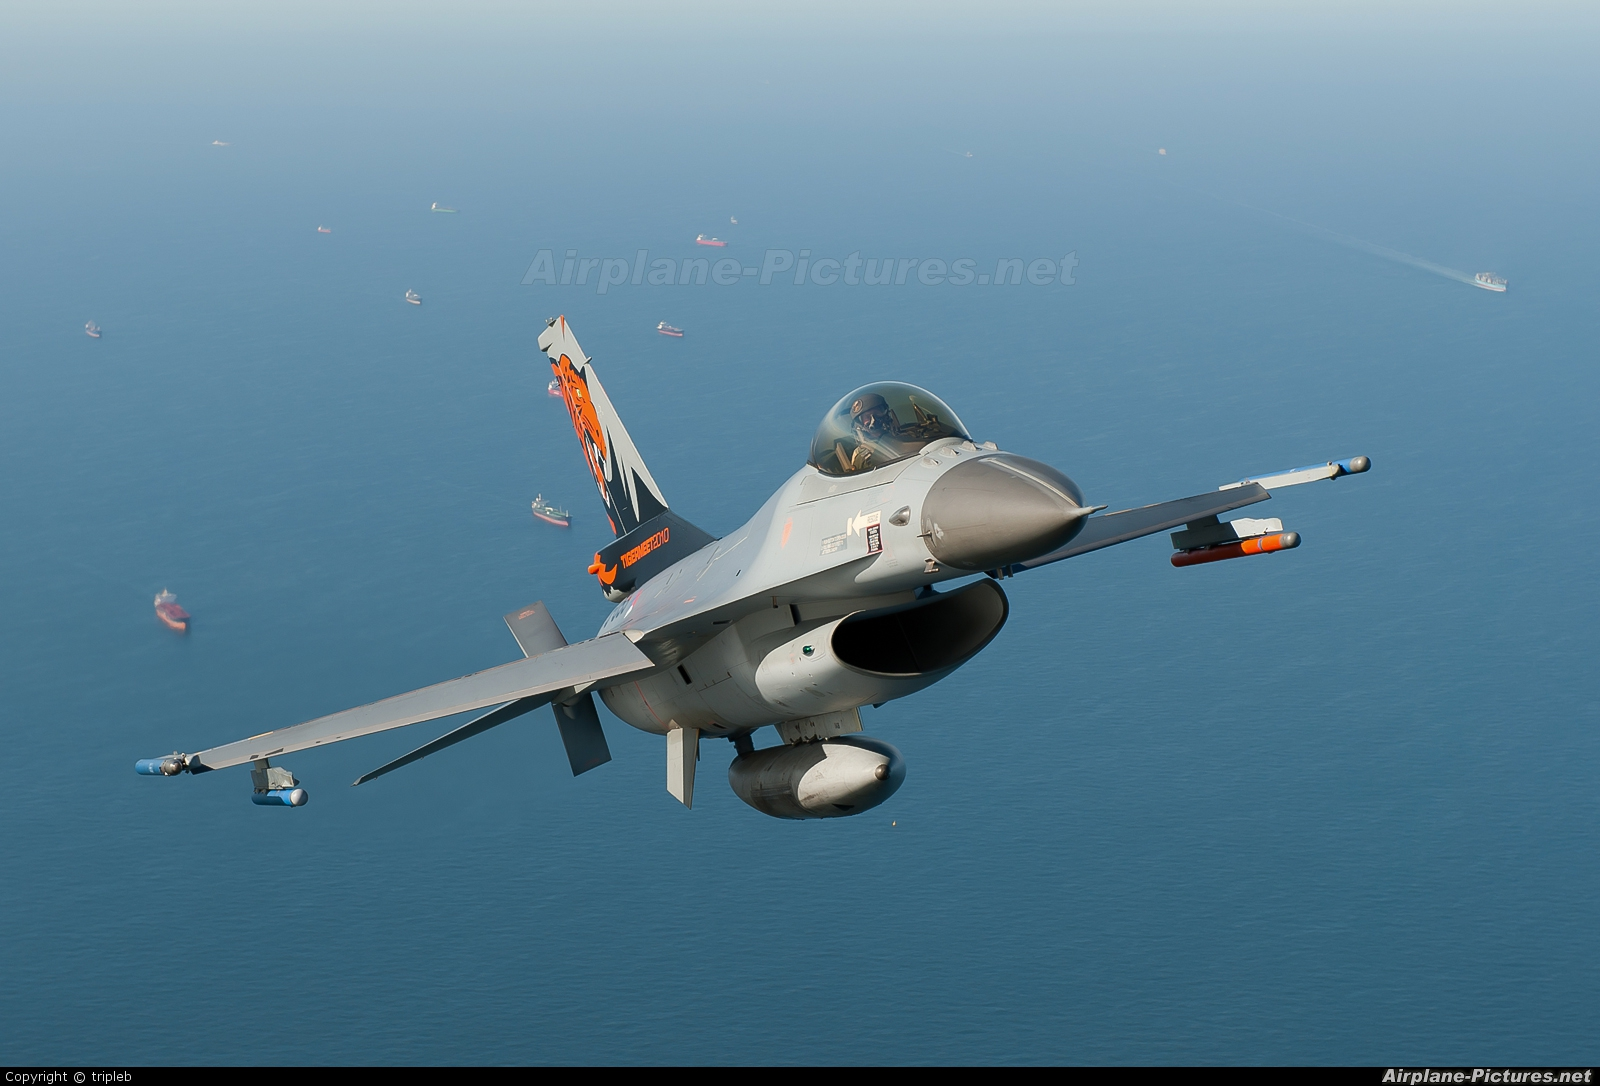 Netherlands - Air Force J-055 aircraft at In Flight - Netherlands